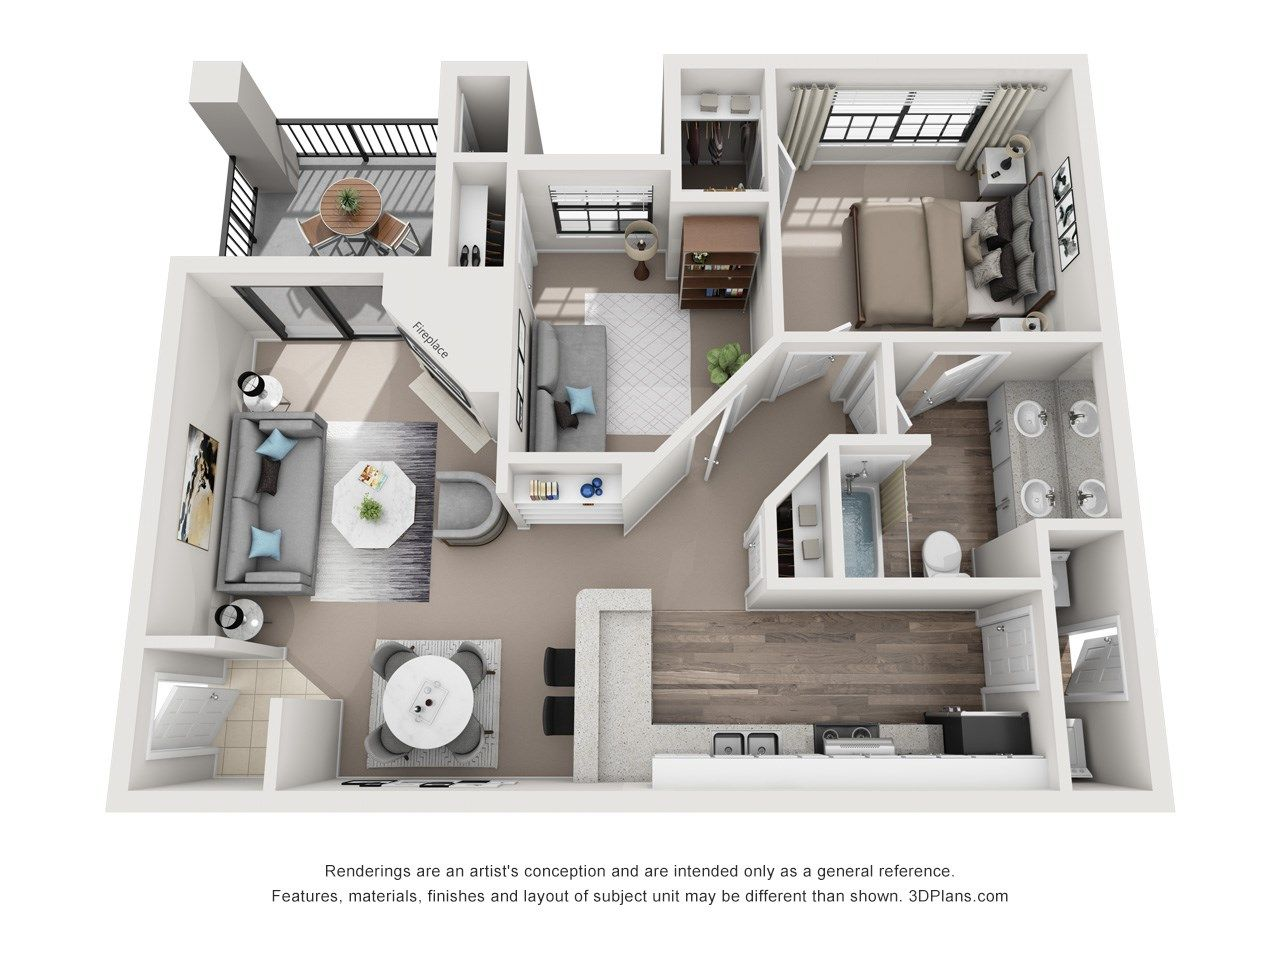 Pin by The Gio on One Bedroom (with a den) Floor Plans in